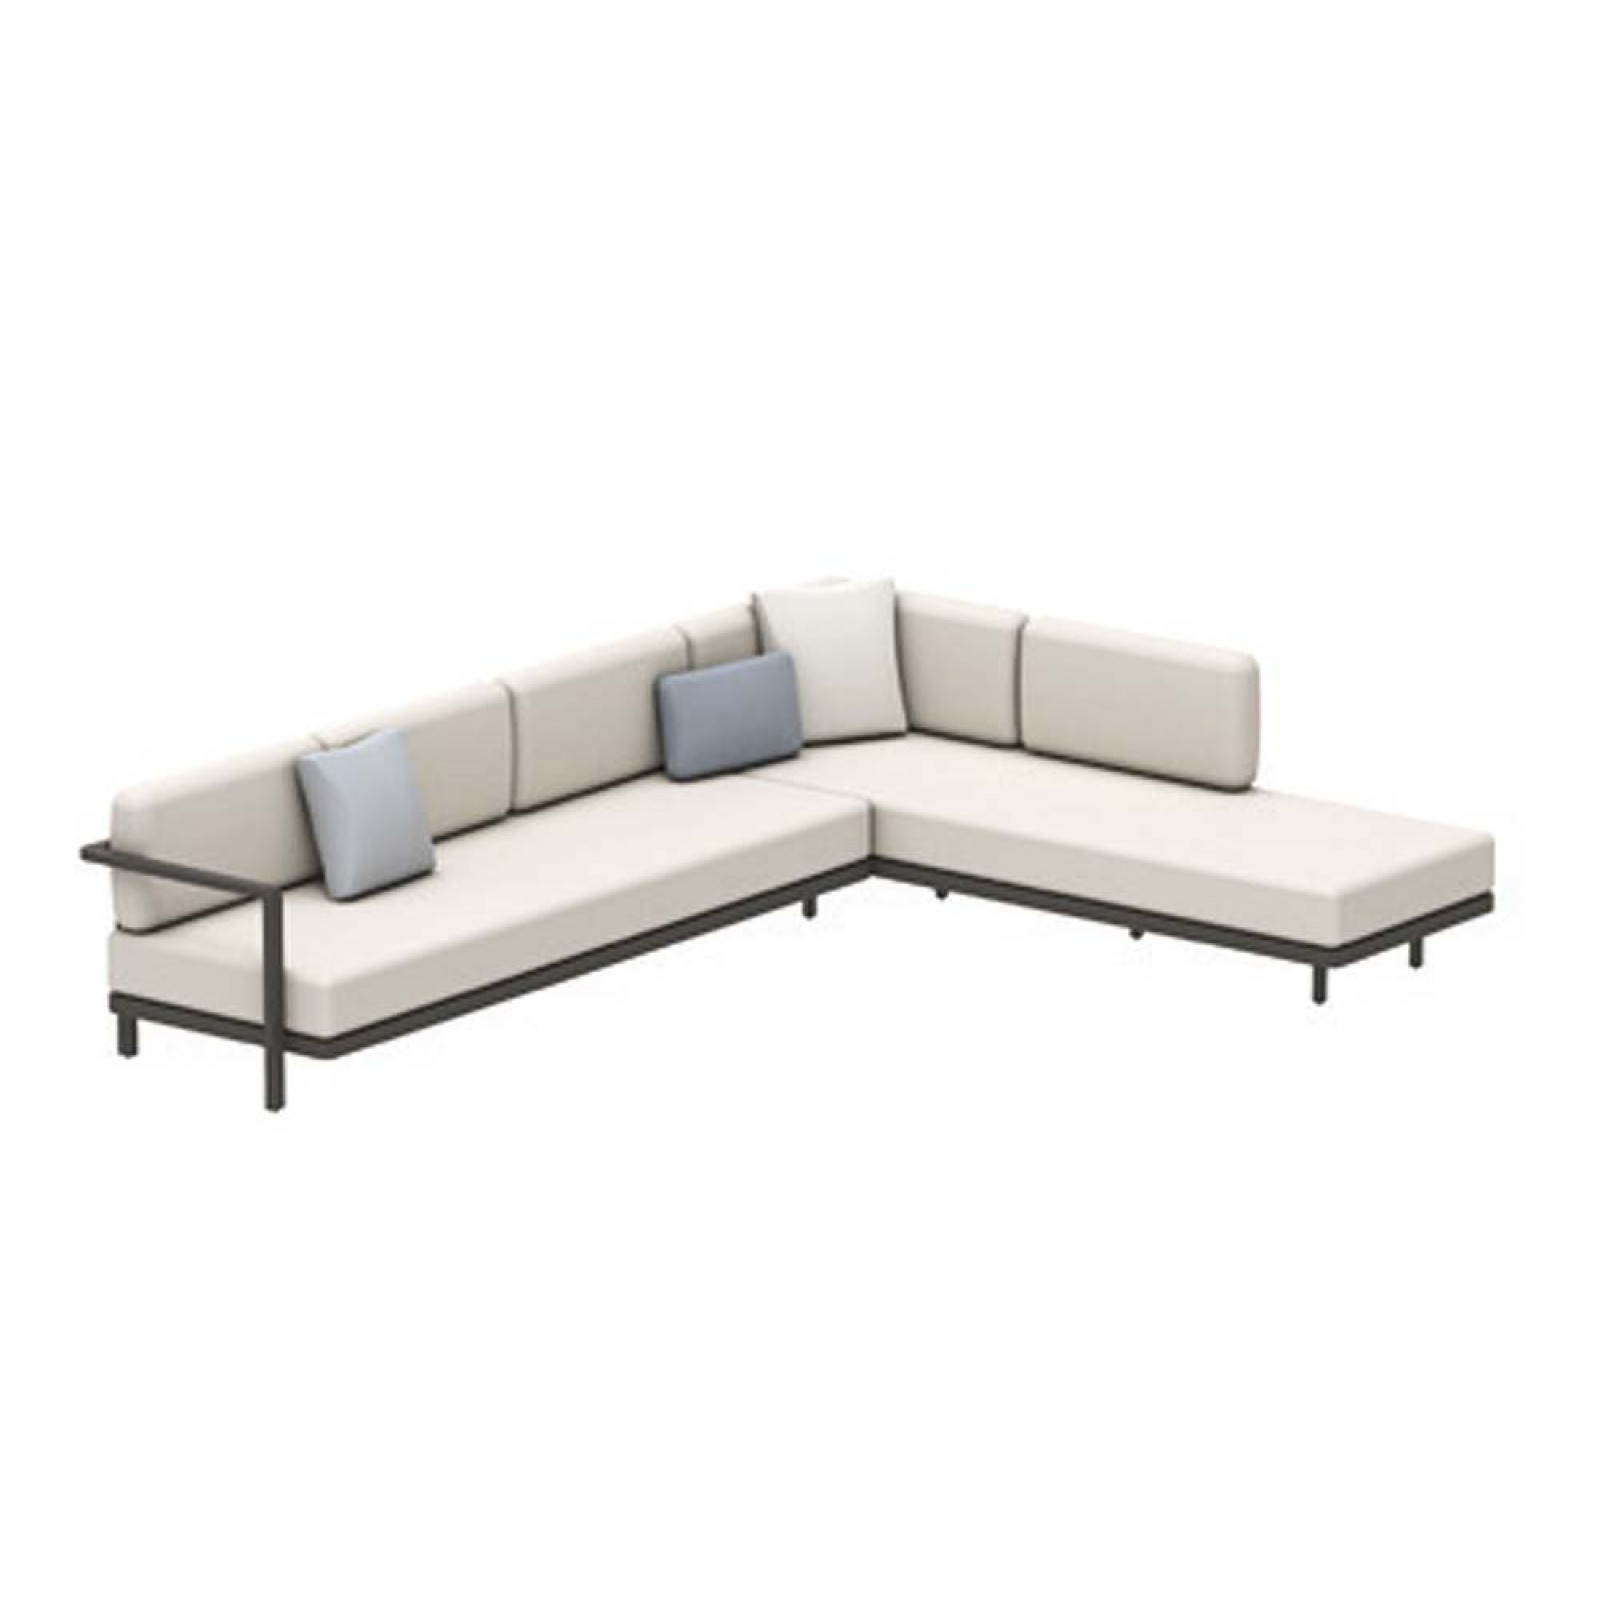 Set A • Royal Botania Red Label • Alura Lounge Ecksofa 07 • 330 × 245 rechts/links